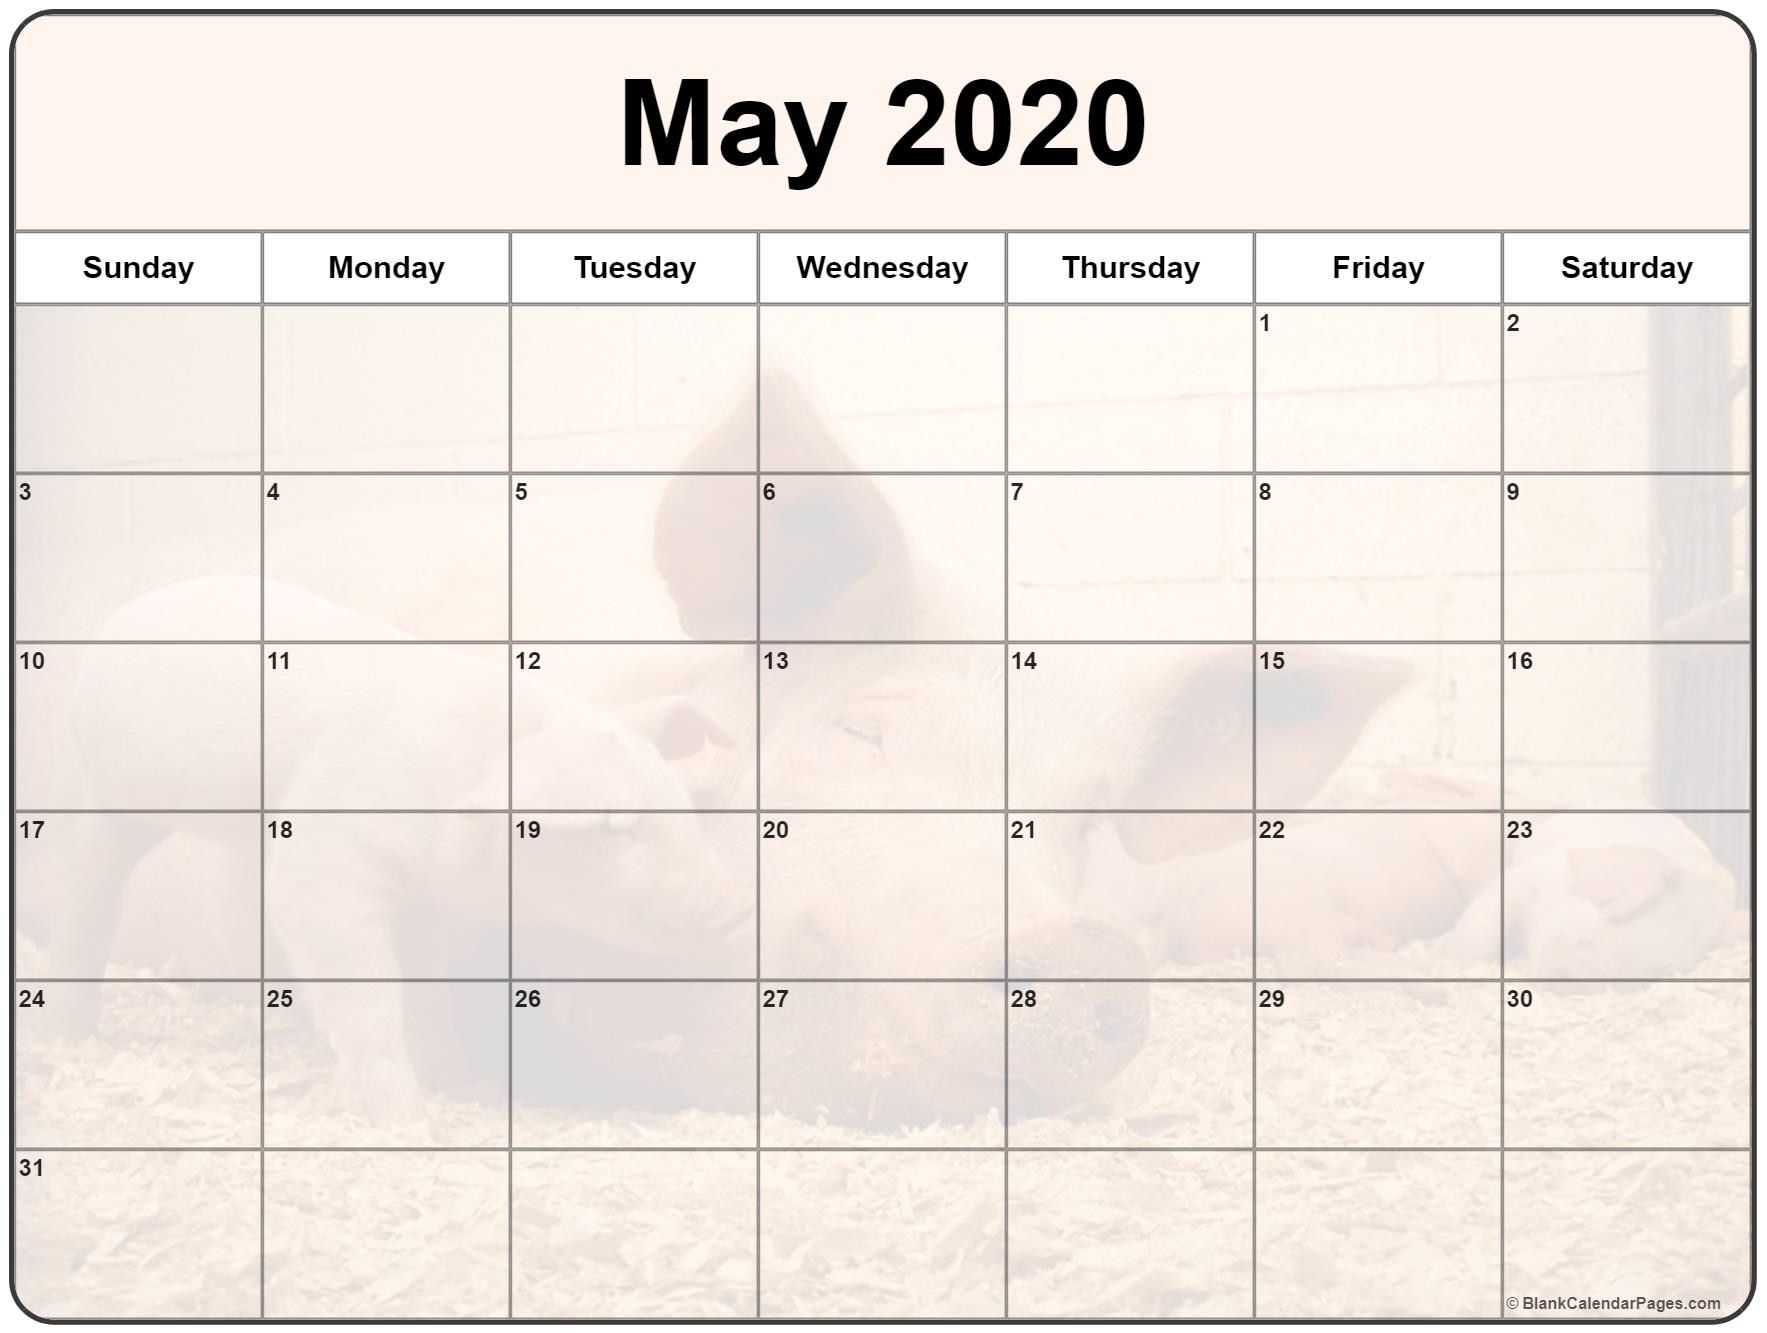 Free Cute Printable Calendars 2020 Collection Of May 2020 Photo Calendars with Image Filters